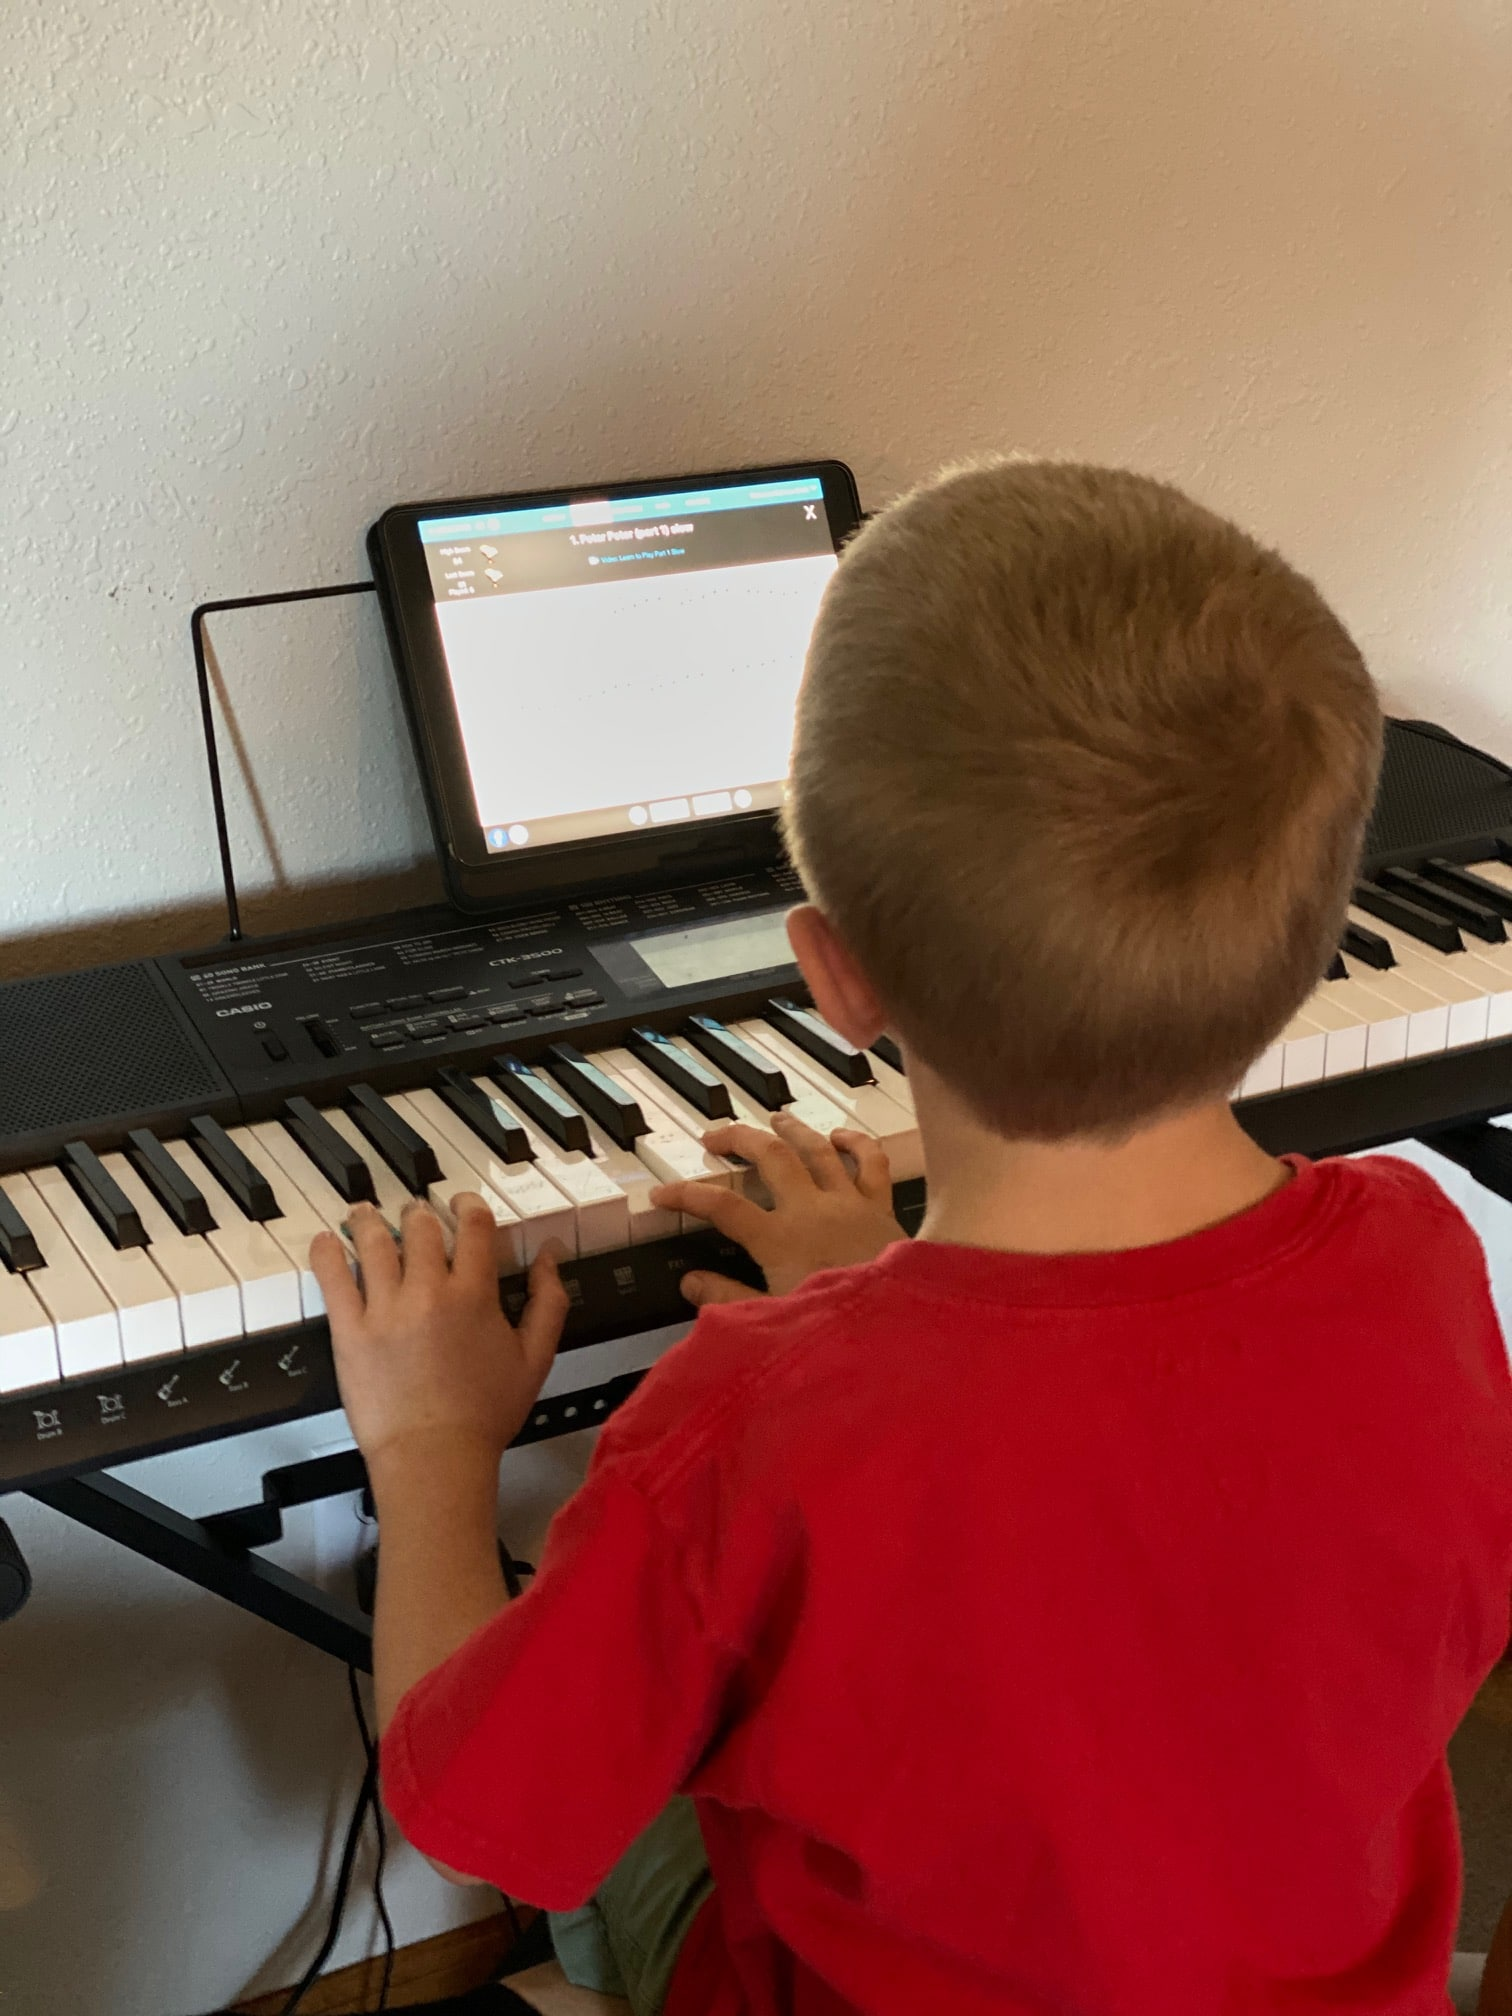 A boy sitting at a desk in front of a piano keyboard playing piano marvel